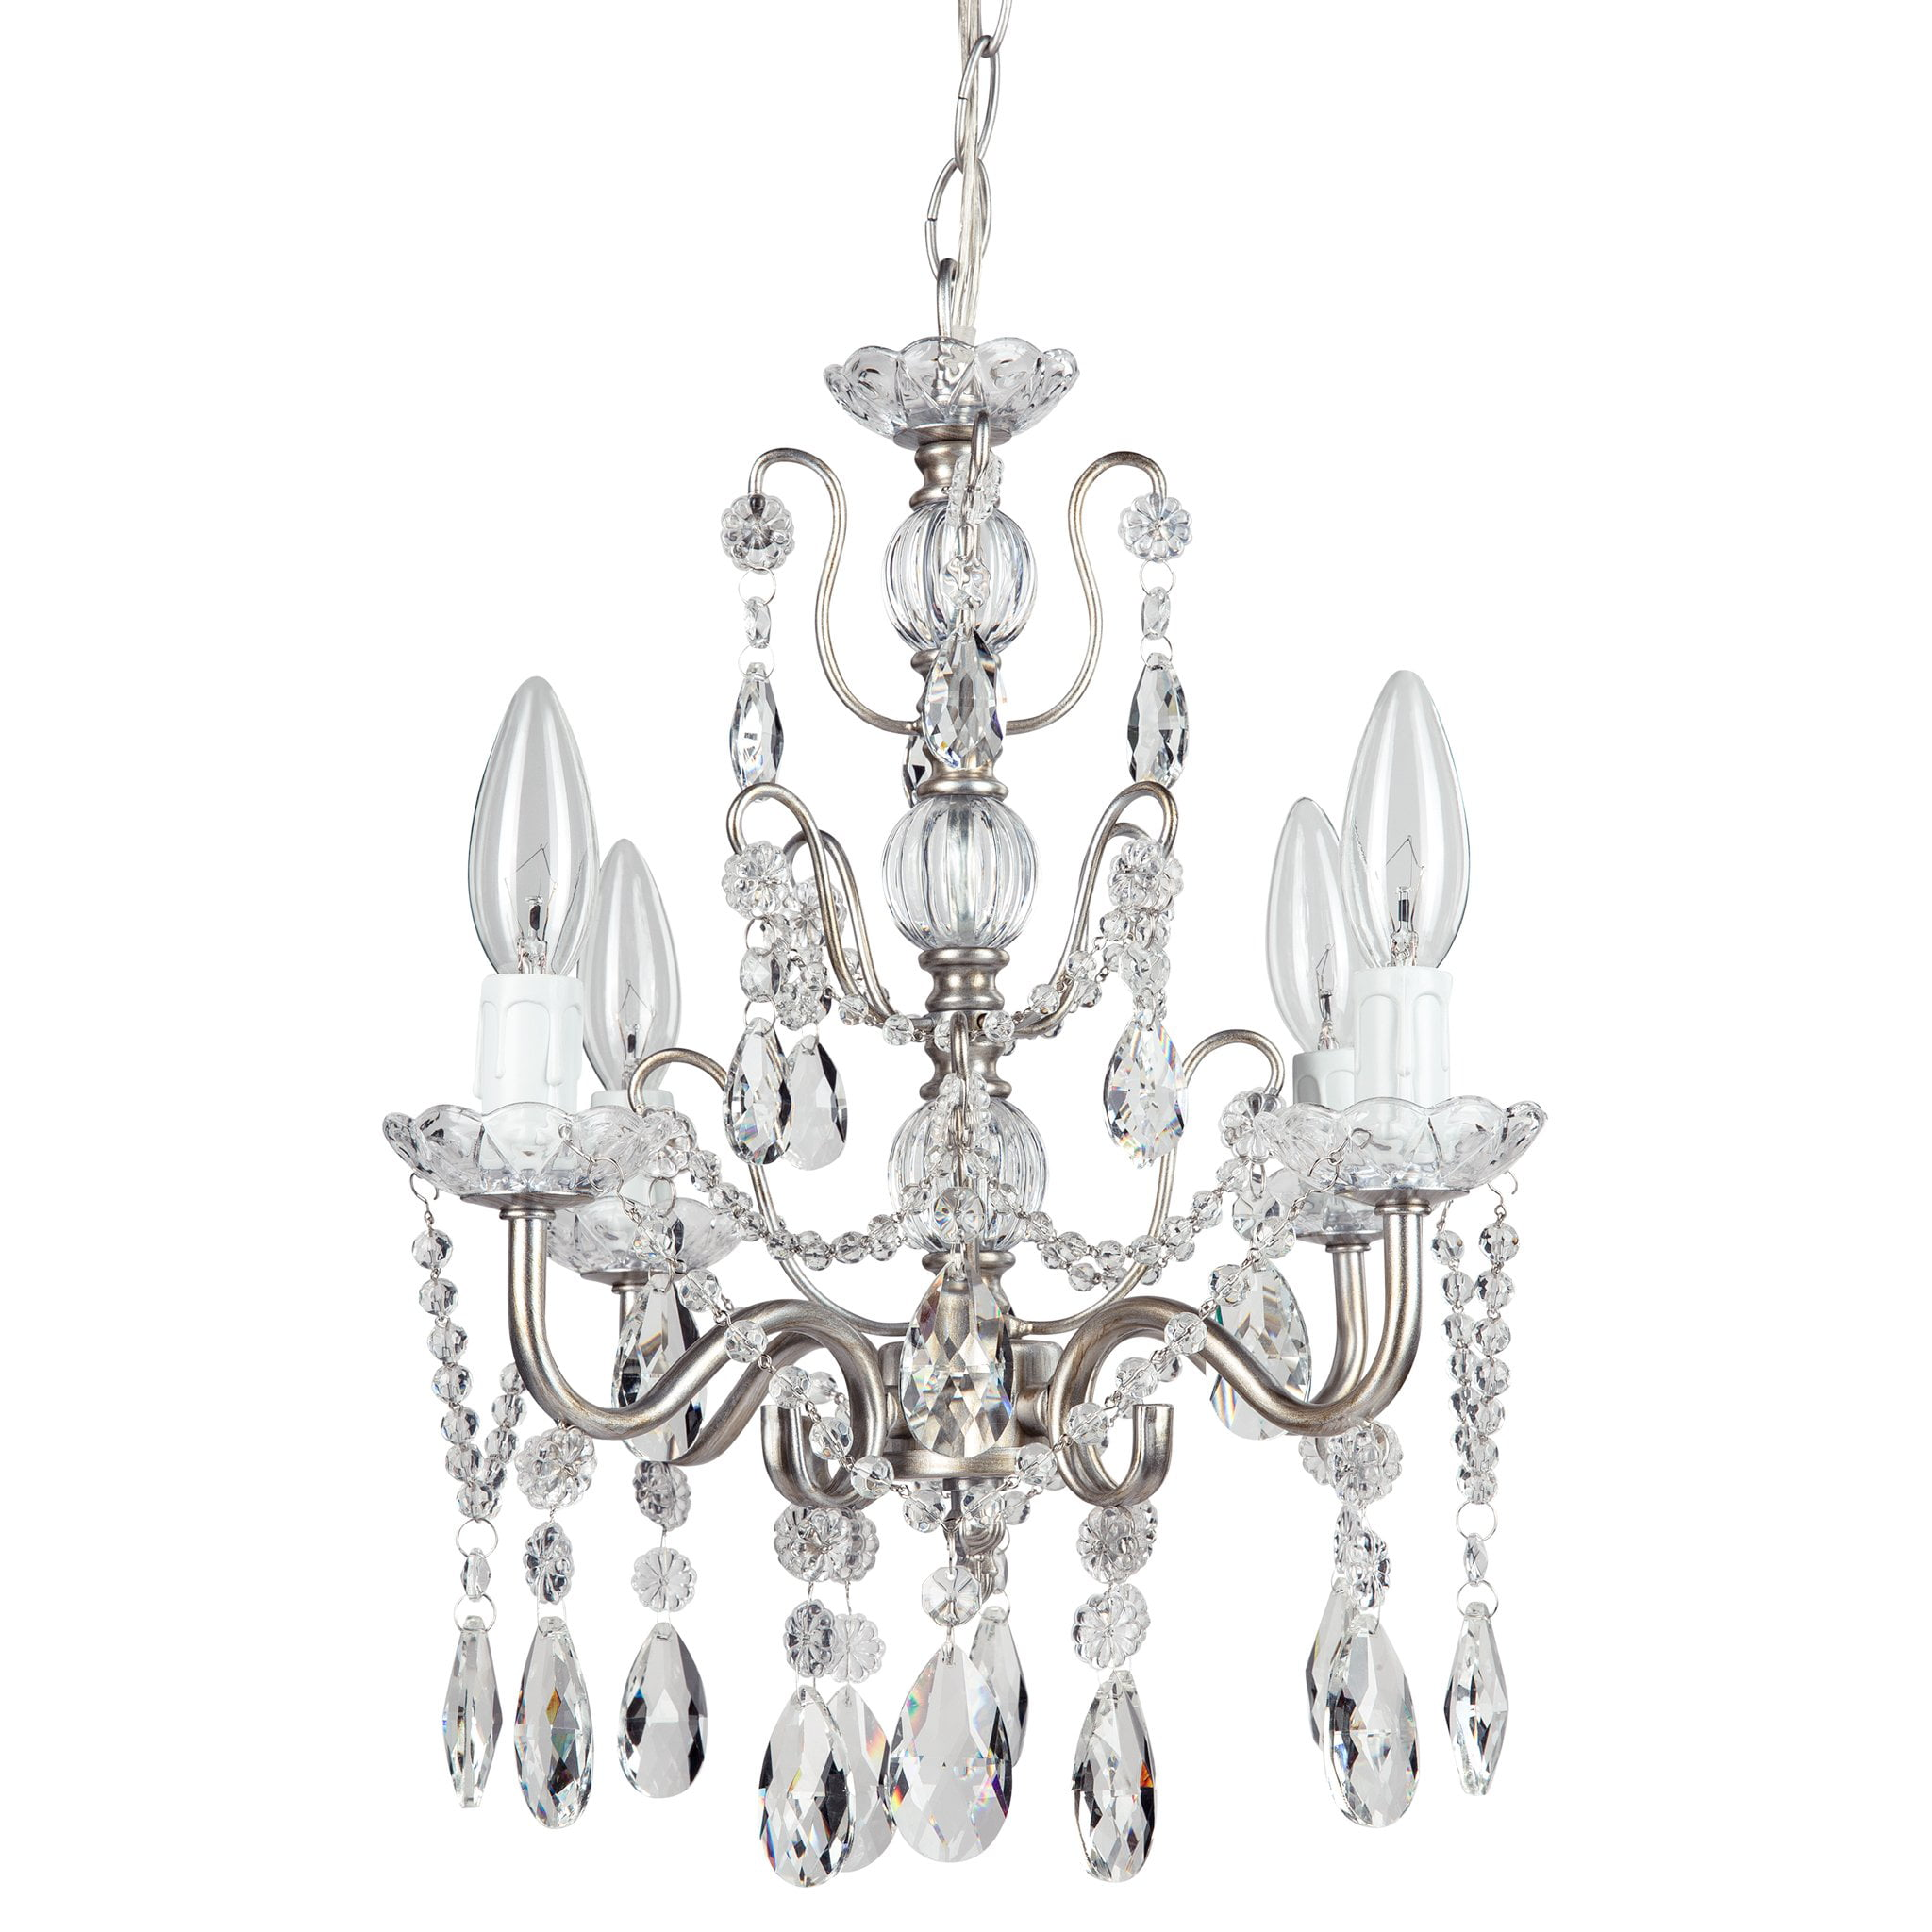 Amalfi Decor 4 Light Shabby Chic Crystal Plug-In Chandelier (Gold) | Wrought Iron Frame with Glass Crystals by